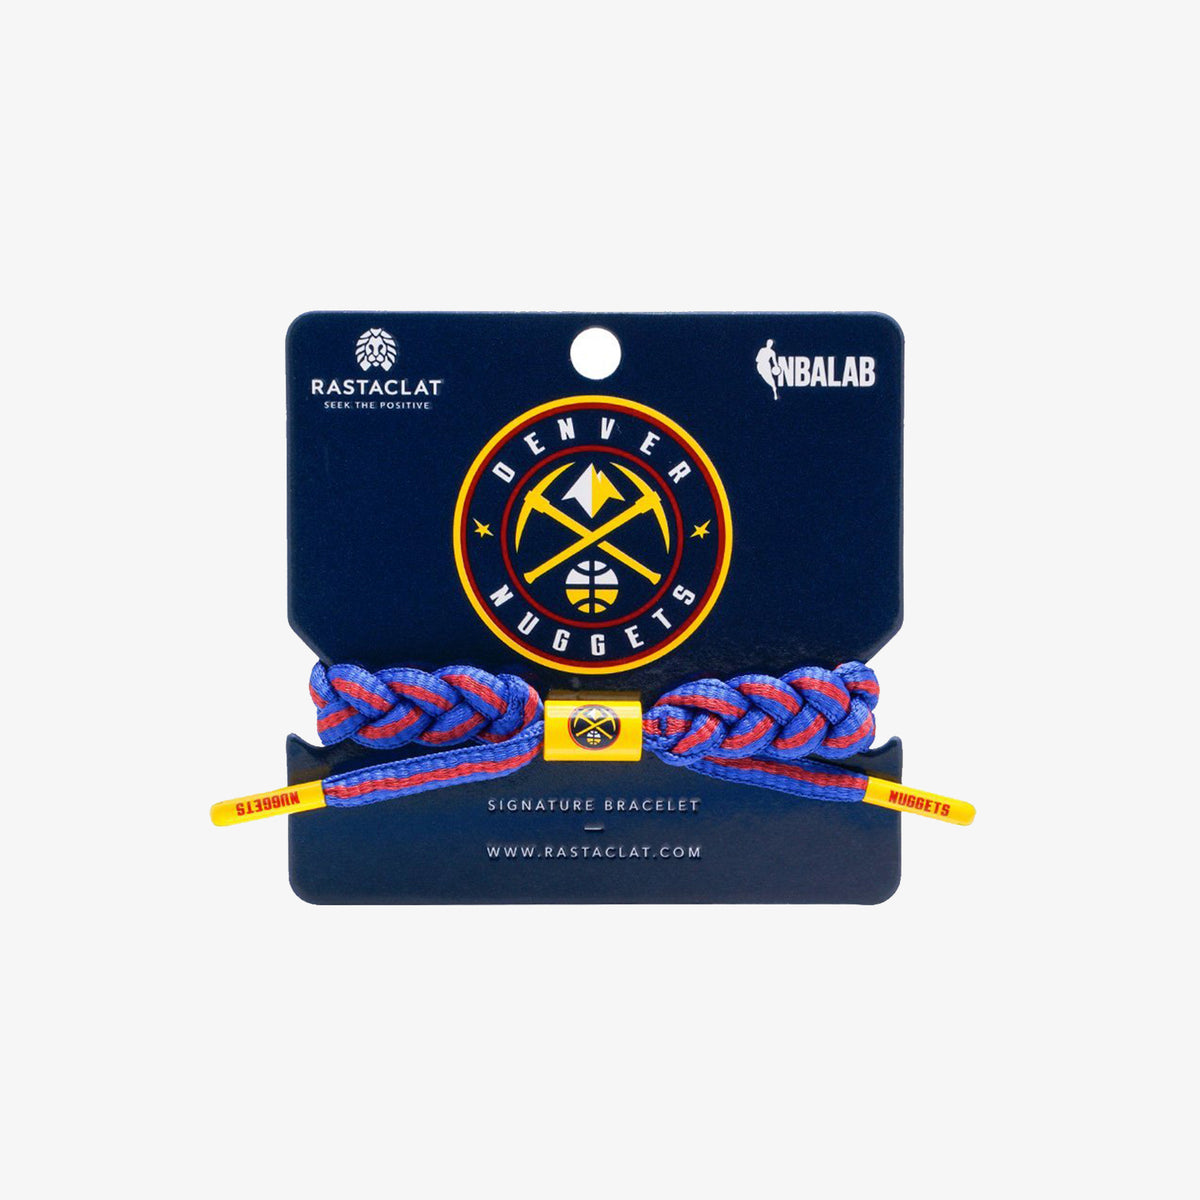 Rastaclat NBA Bracelet - Denver Nuggets (Home)